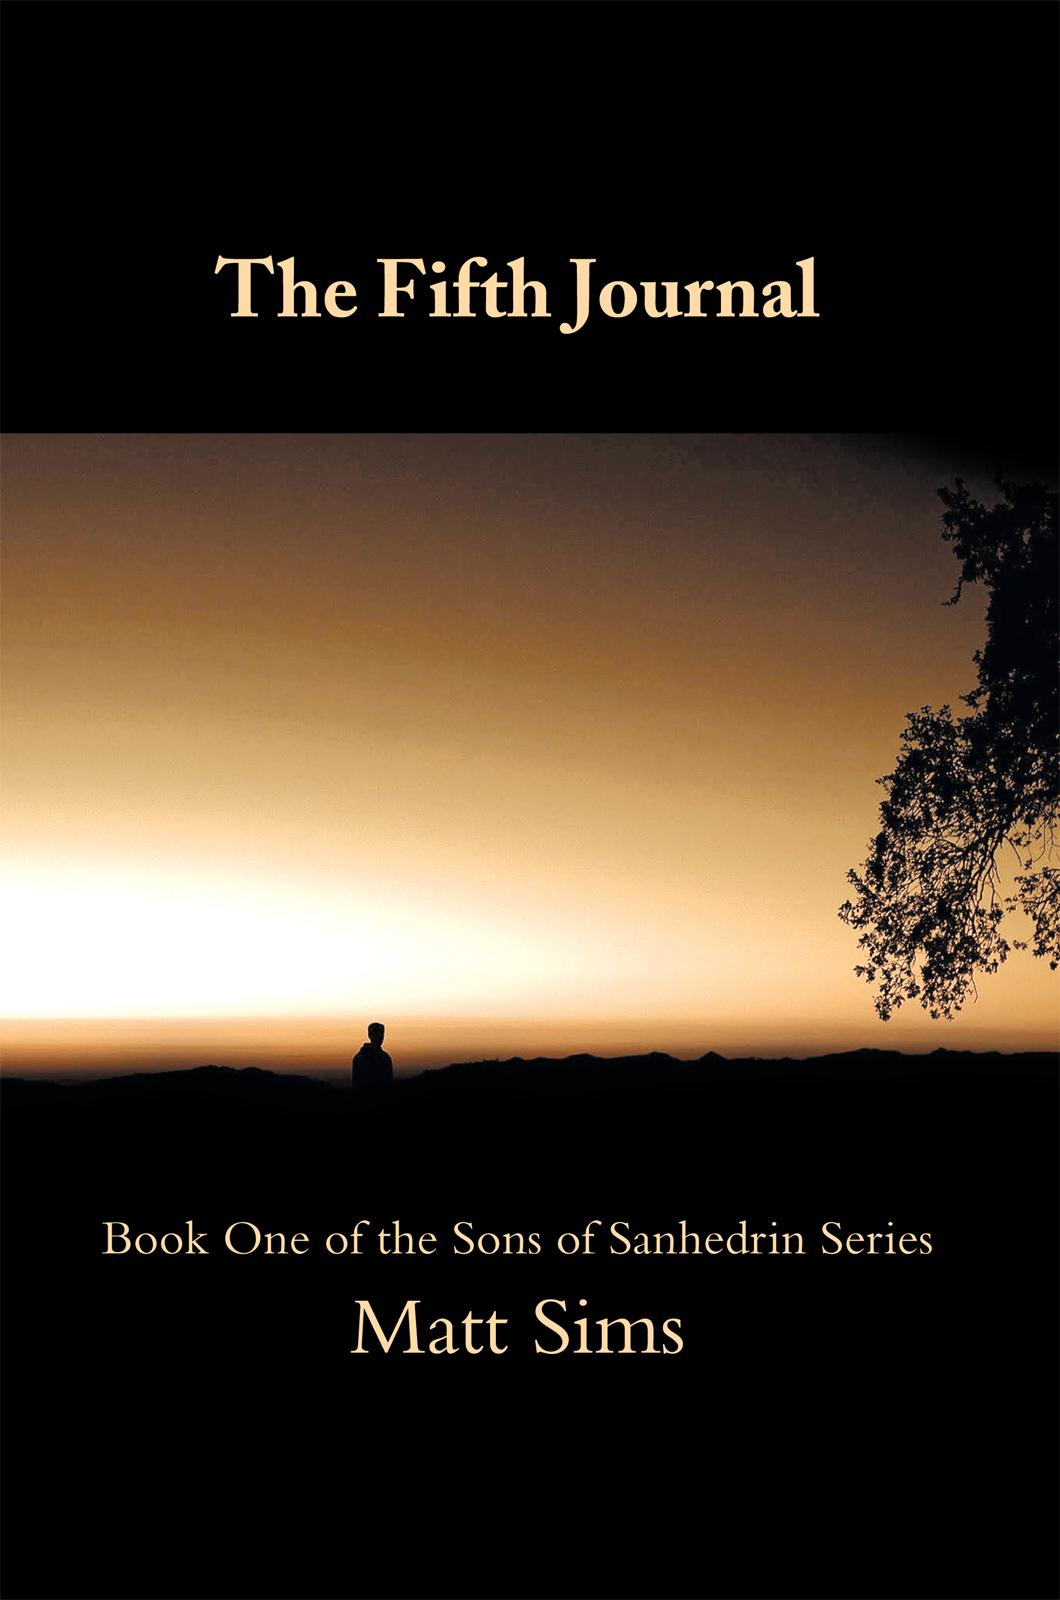 The Fifth Journal